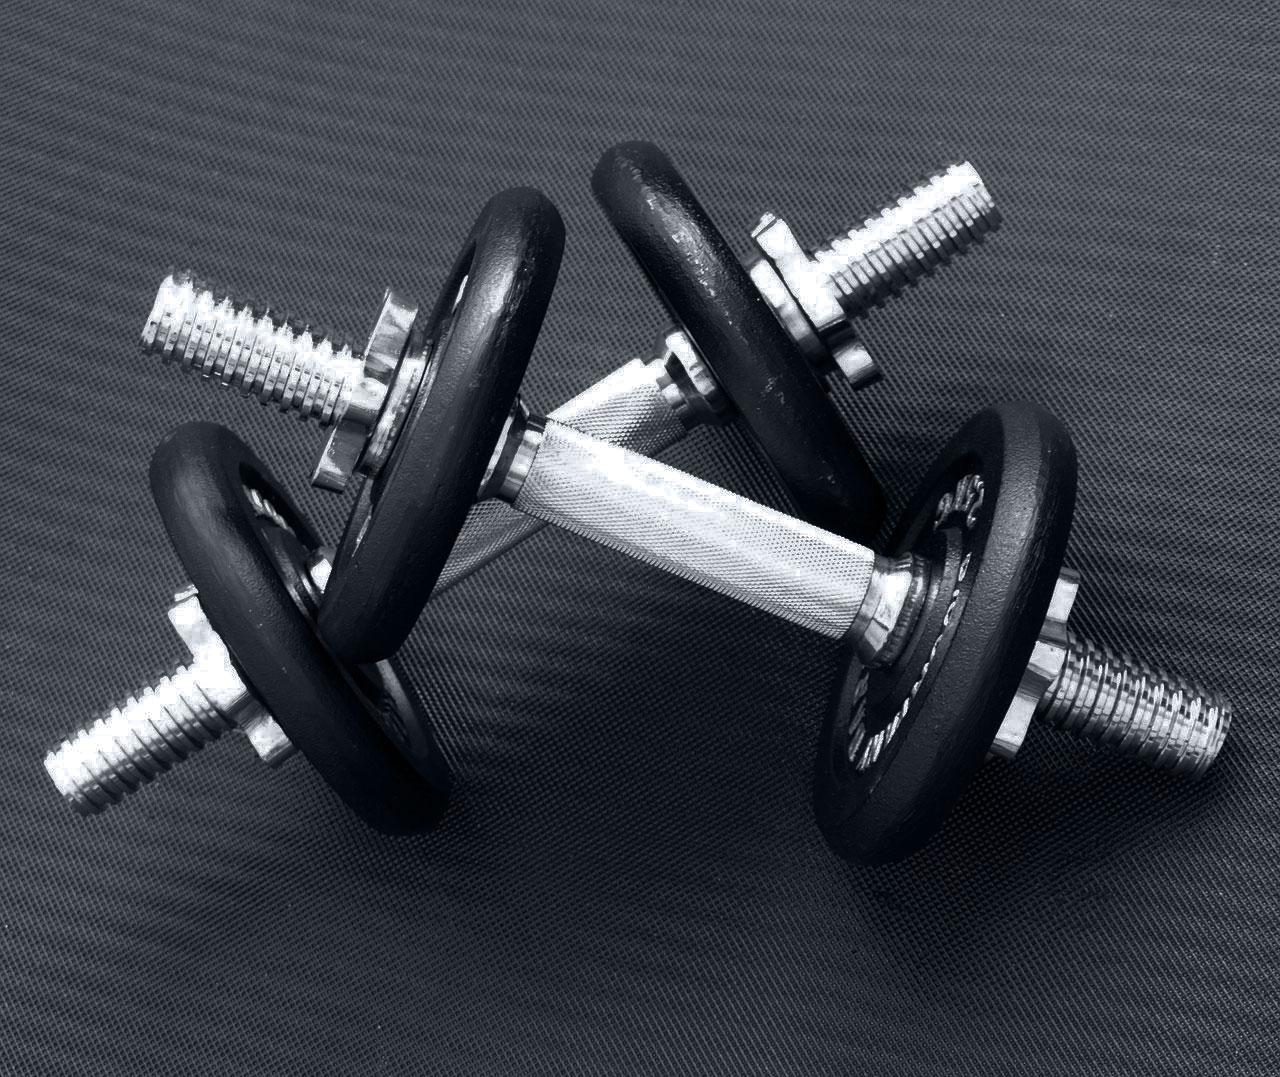 """WUPAS SQUAT ab sofort """"Selbstbedienungs-Fitnesscenter"""""""